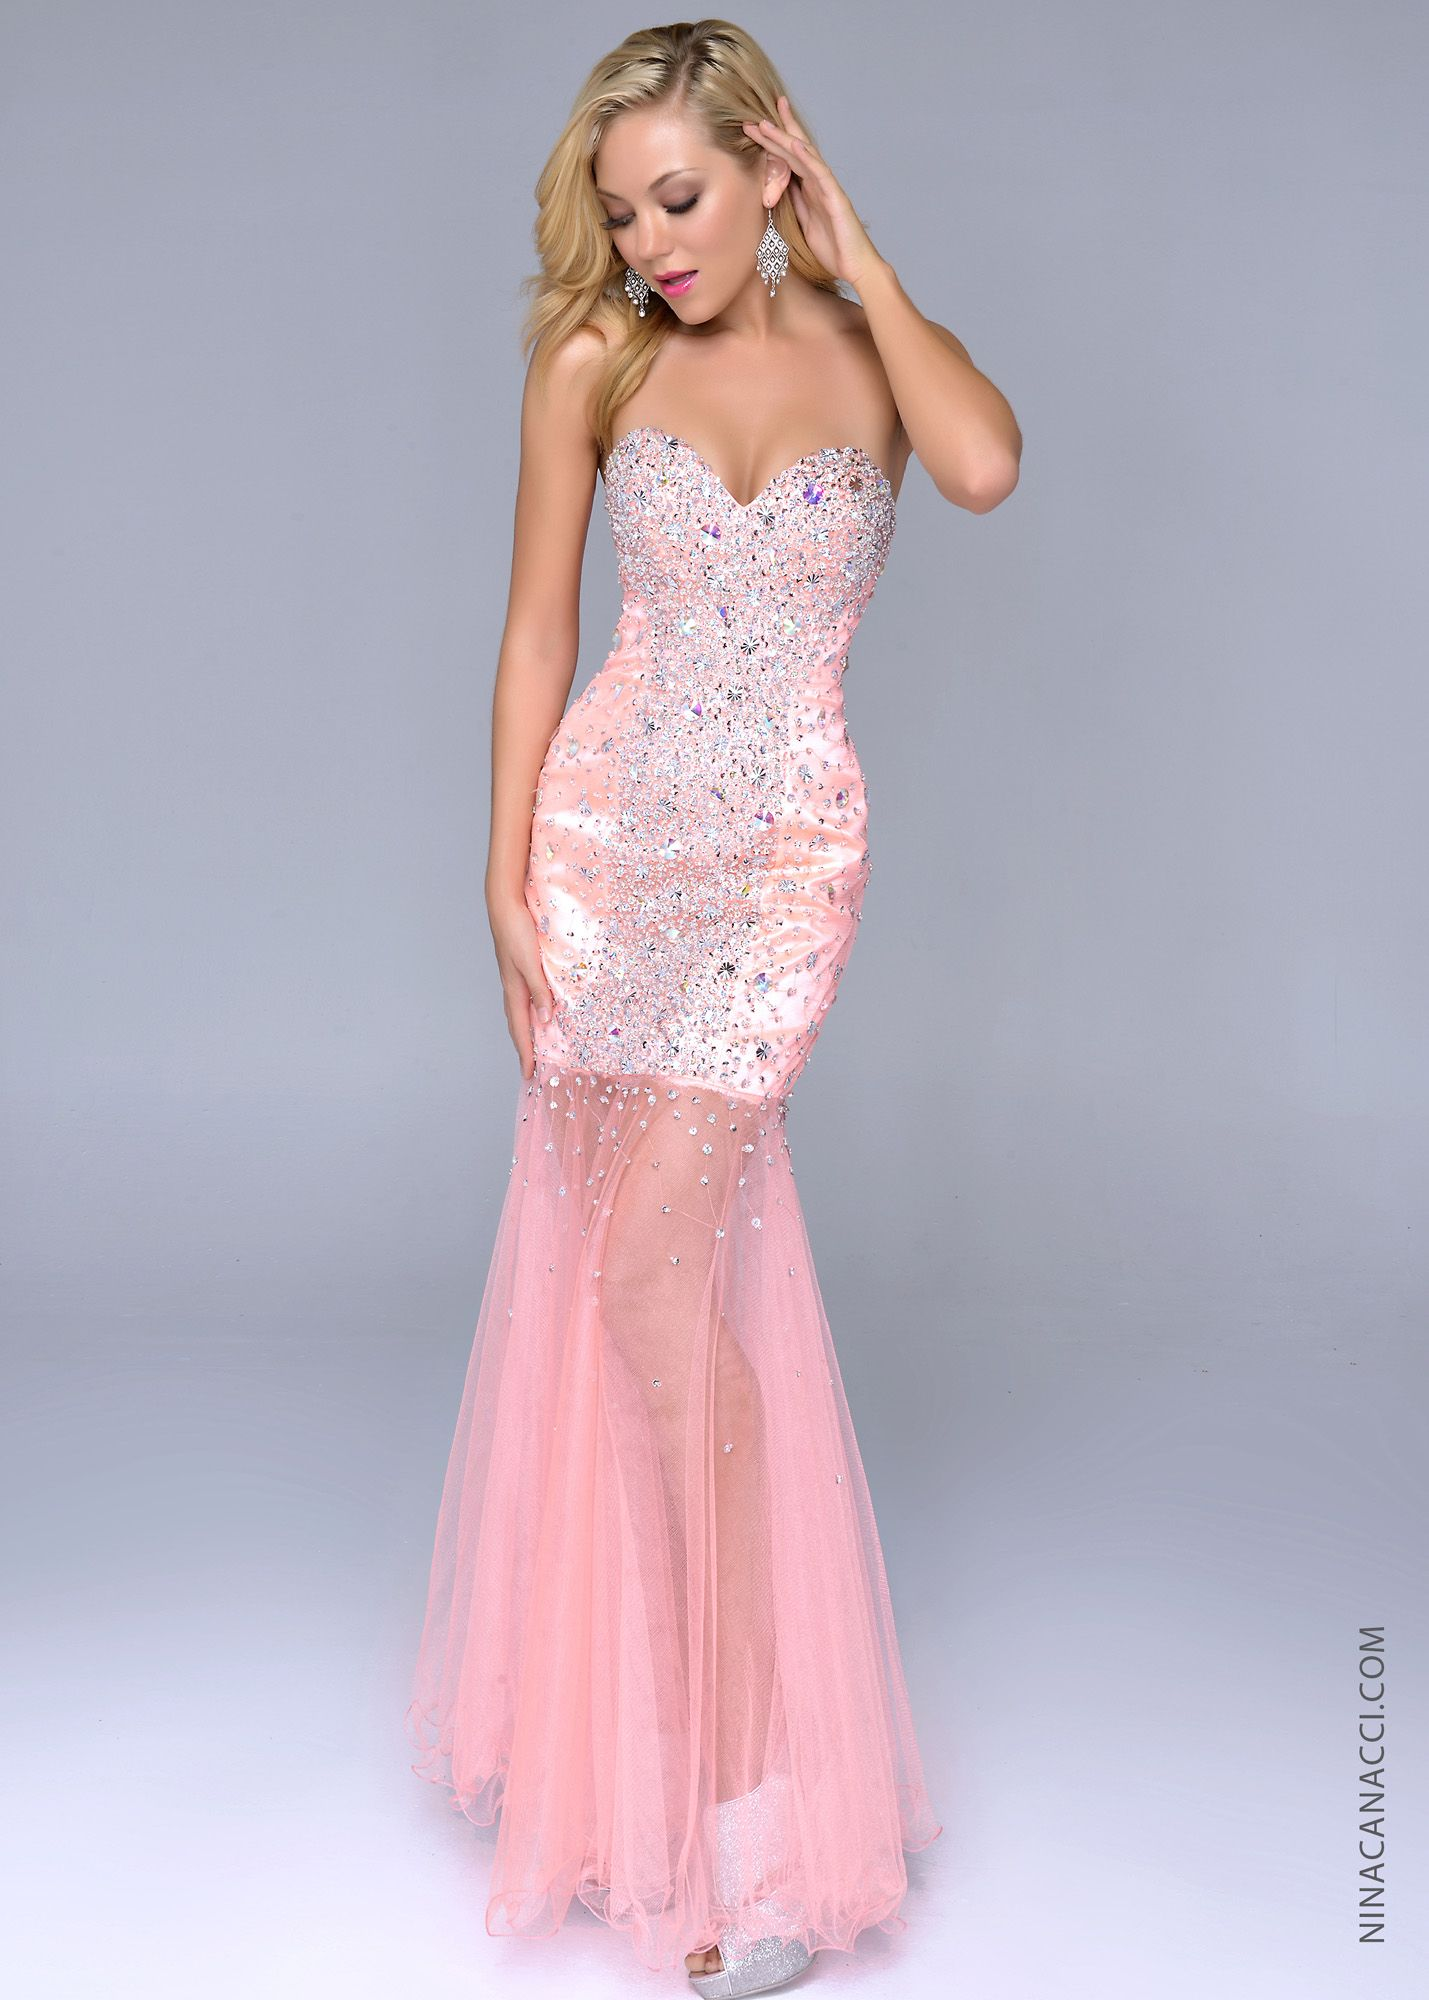 Nina canacci peach strapless beaded prom dresses online